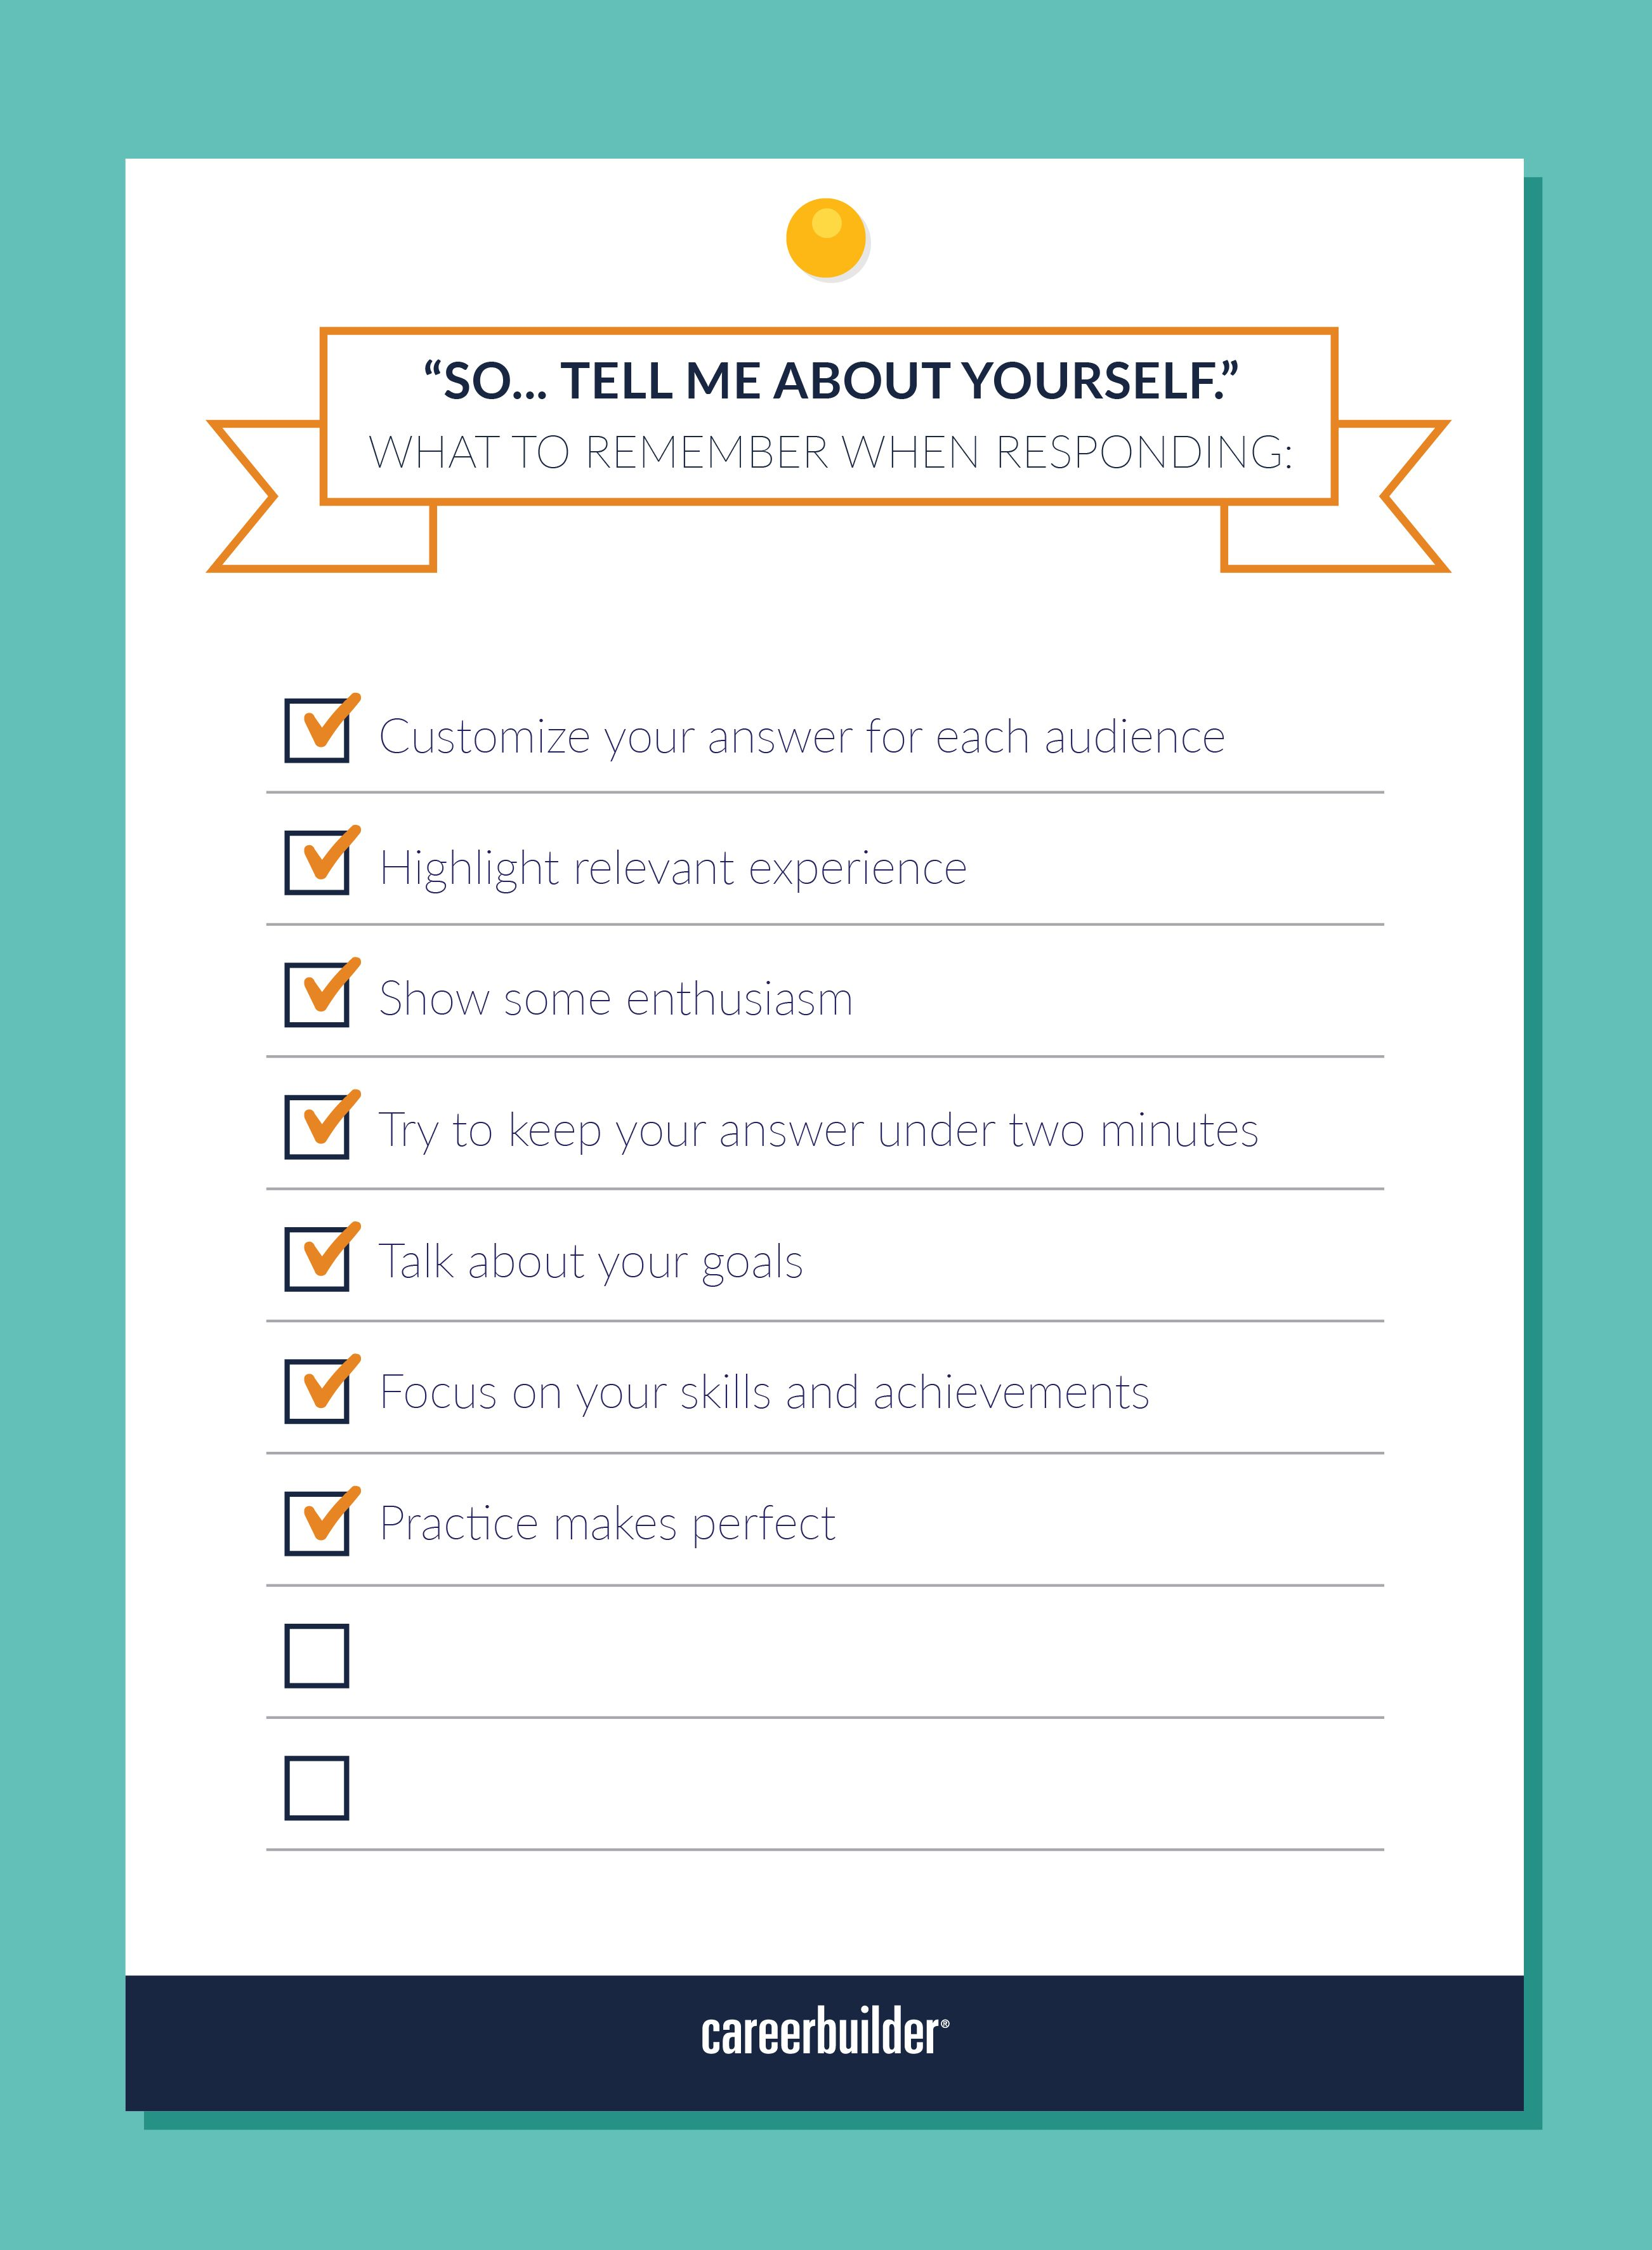 Tell Me About Yourself Should Be An Easy Question To